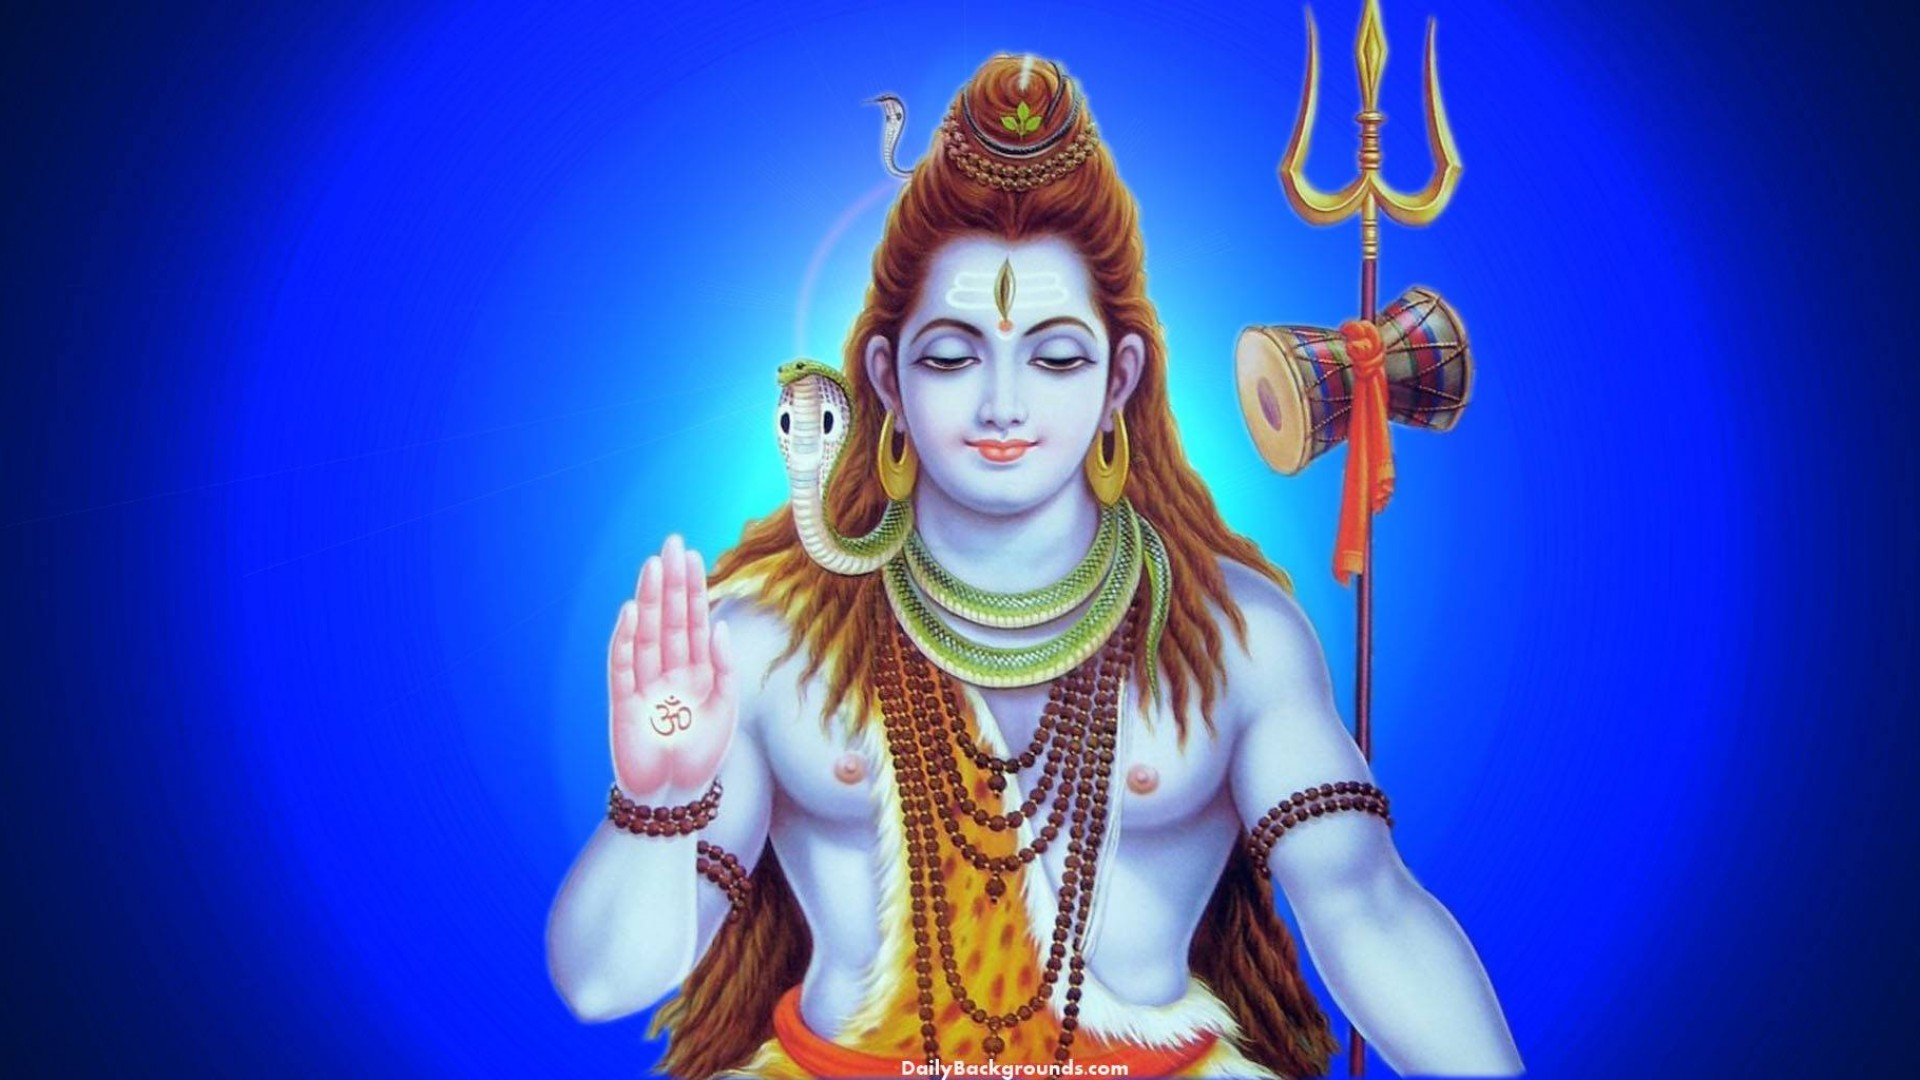 … lord shiva hd wallpapers 1080p for desktop images (18) …